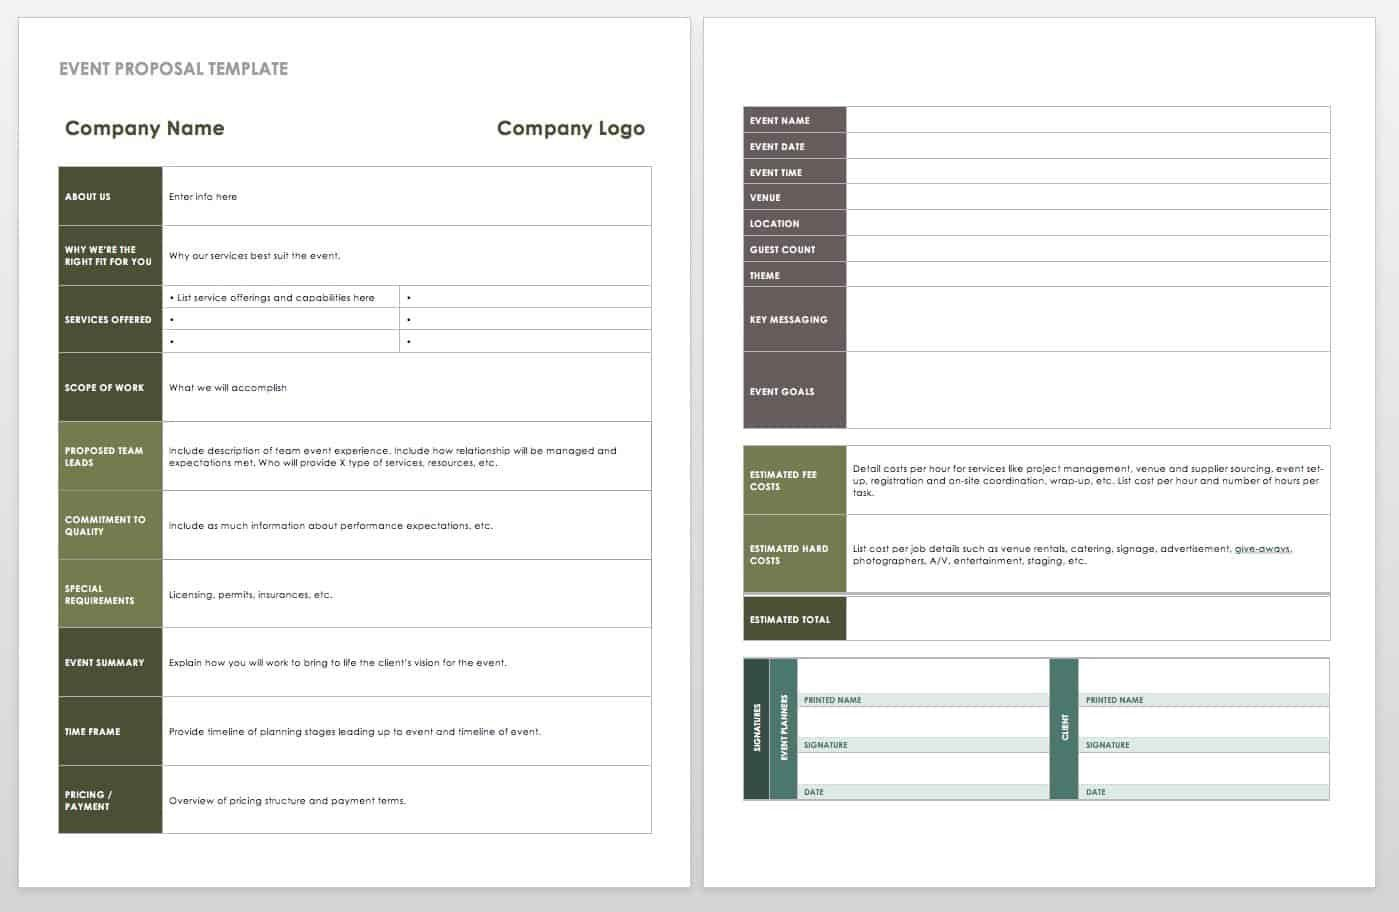 005 Impressive Free Event Planning Template For Corporate Excel Image Full